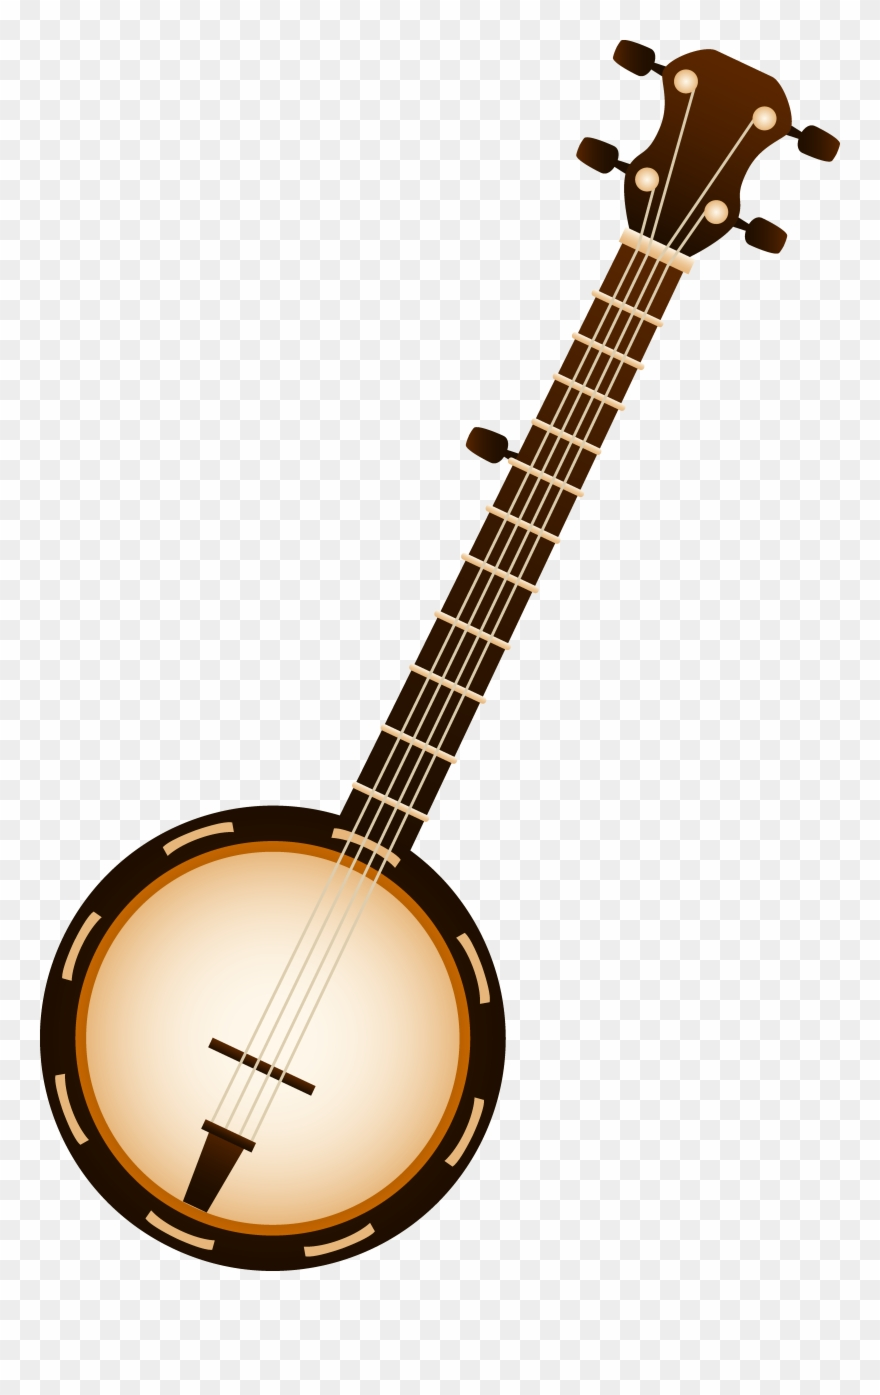 Banjo clipart folk music. Cliparts sweet png download